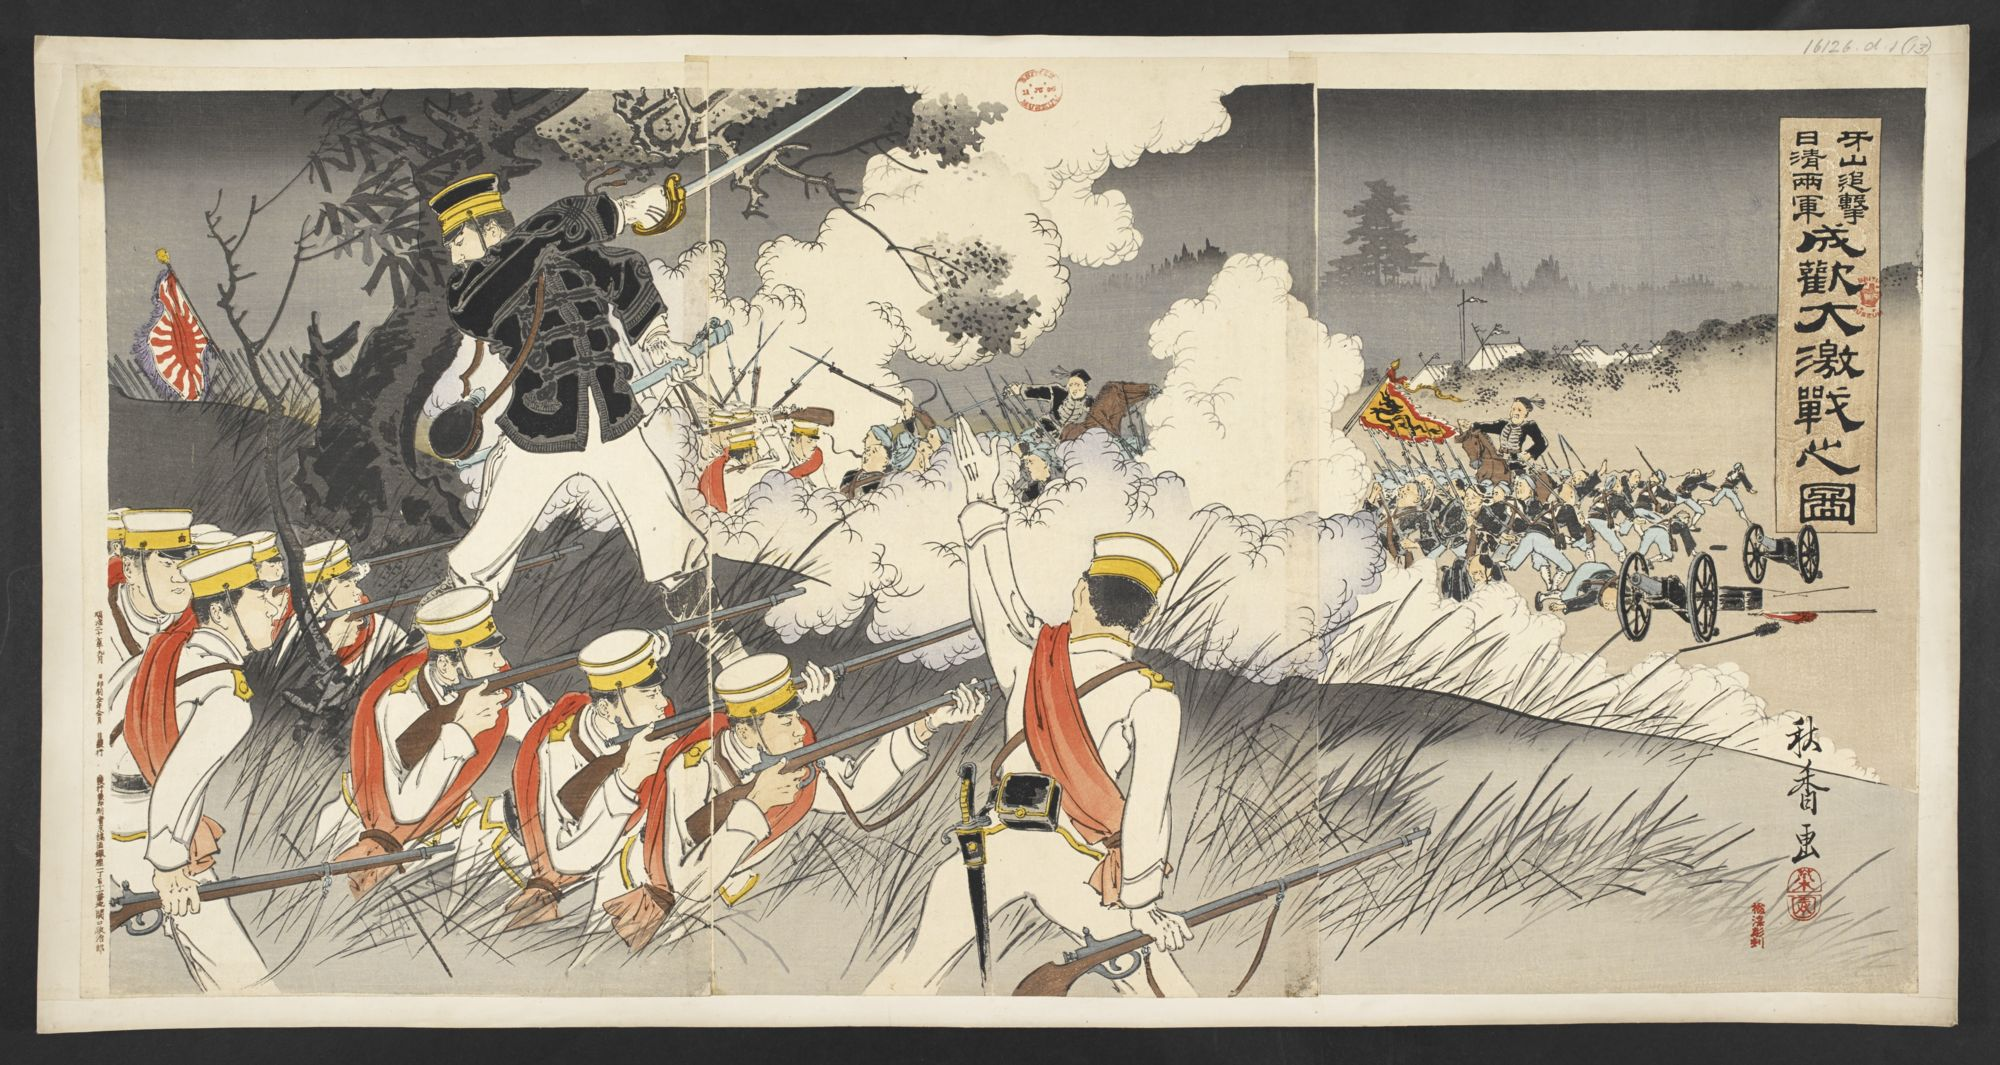 The Battle of Seonghwan near Asan between the Japanese and Chinese armies